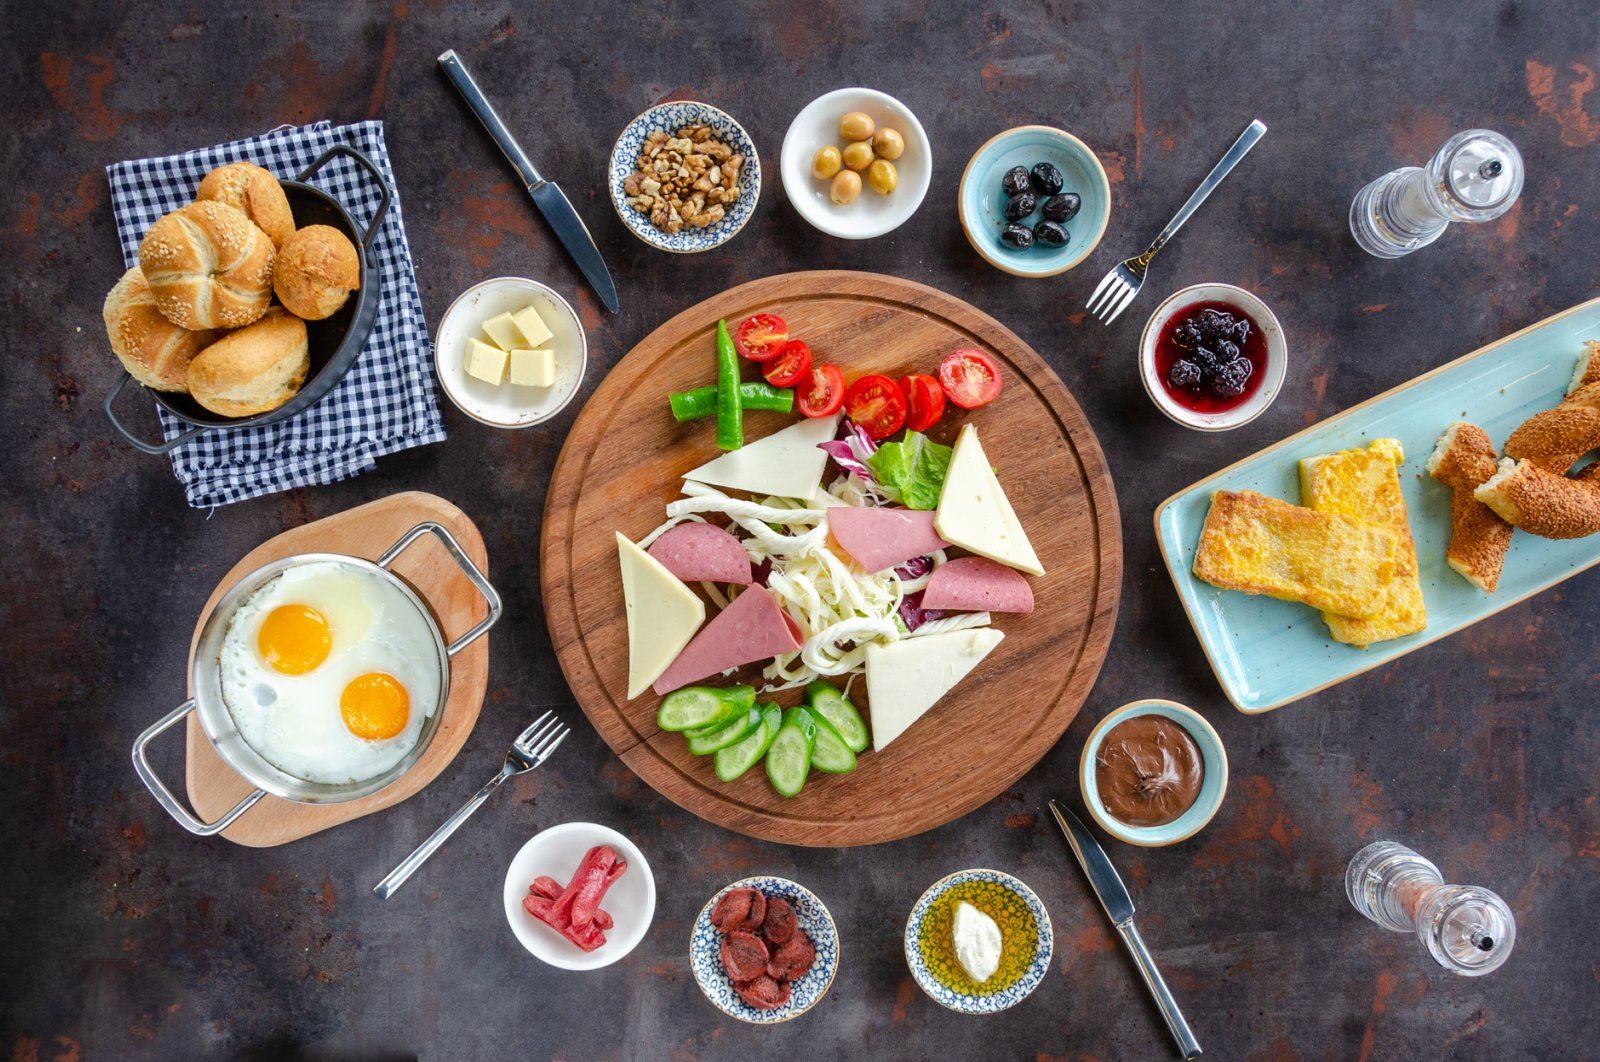 A Turkish breakfast has many elements, including but not limited to eggs, olives, honey, butter, cheese and bread. (iStock Photo)